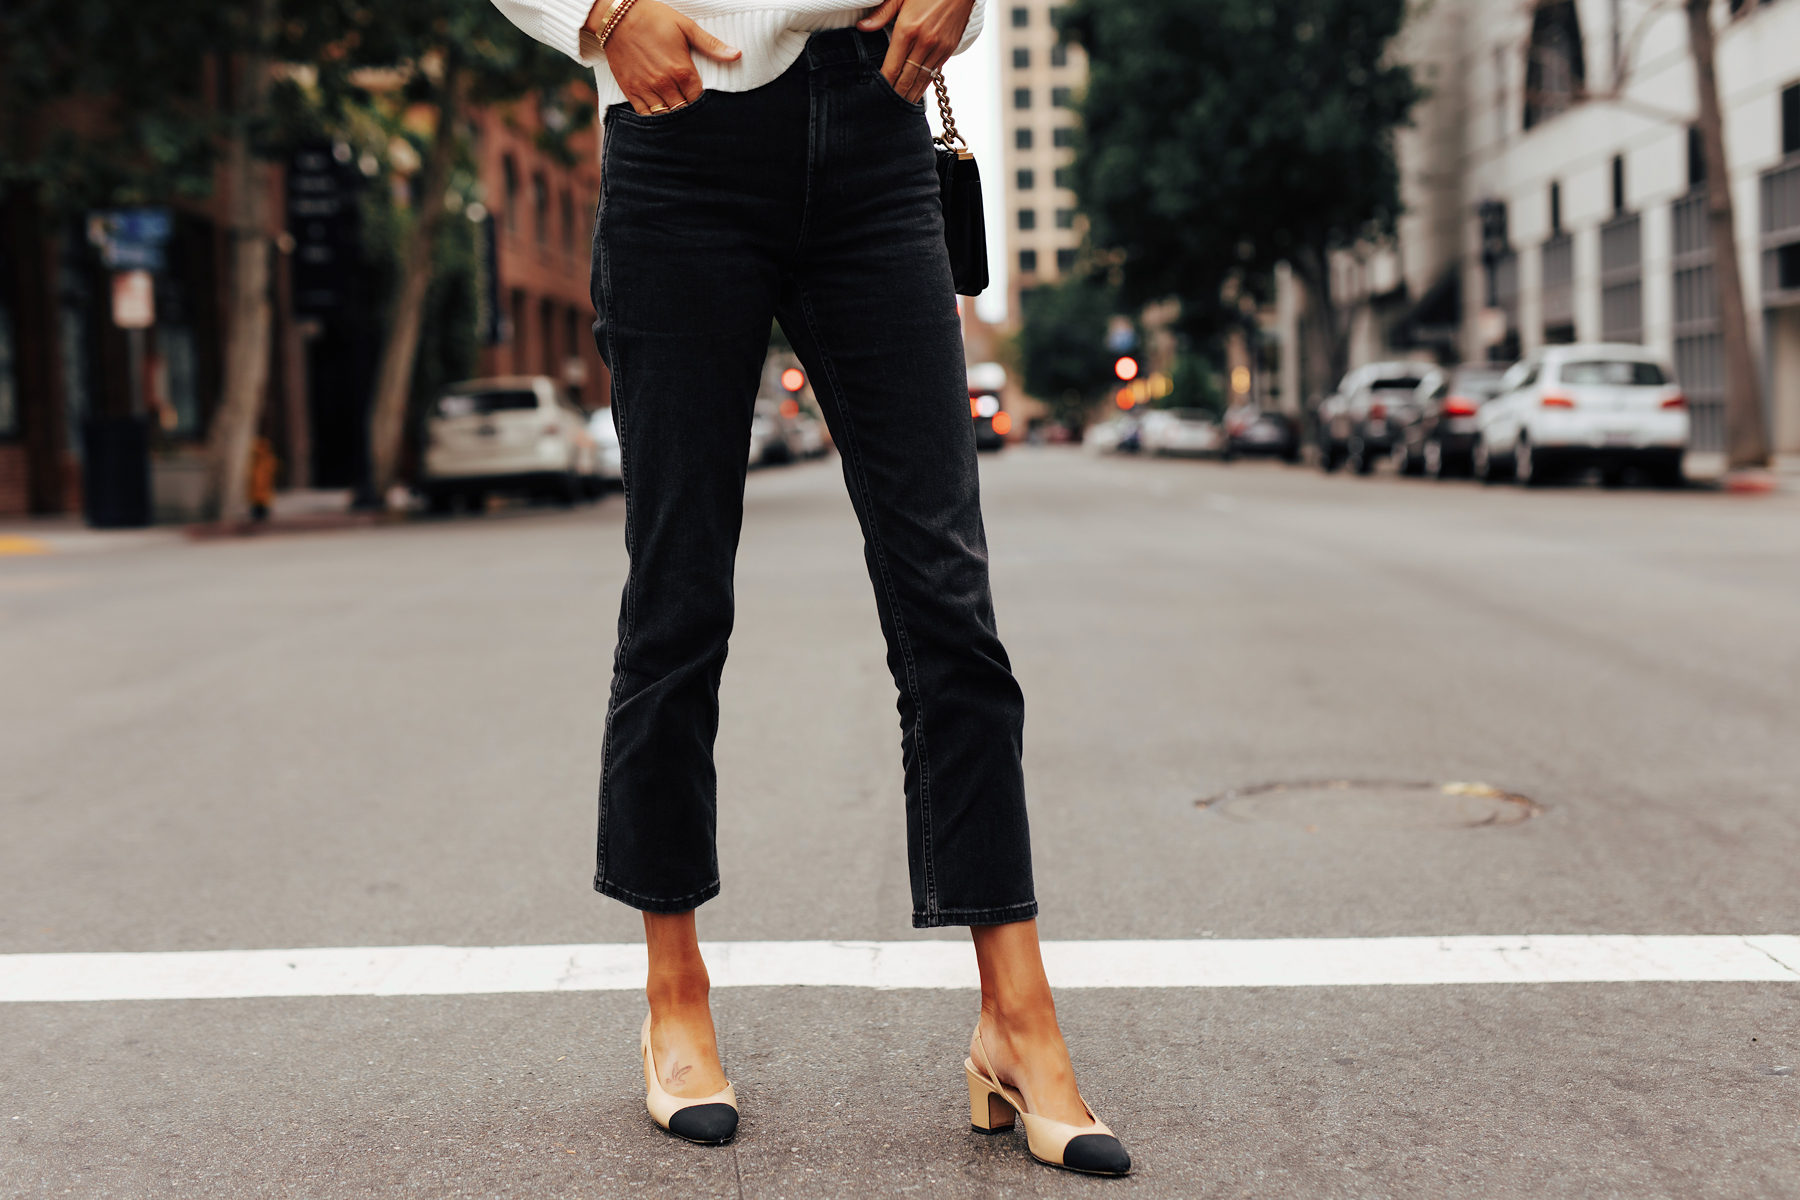 Fashion Jackson Wearing Everlane Cheeky Bootcut Ankle Jean in Black Chanel Slingbacks